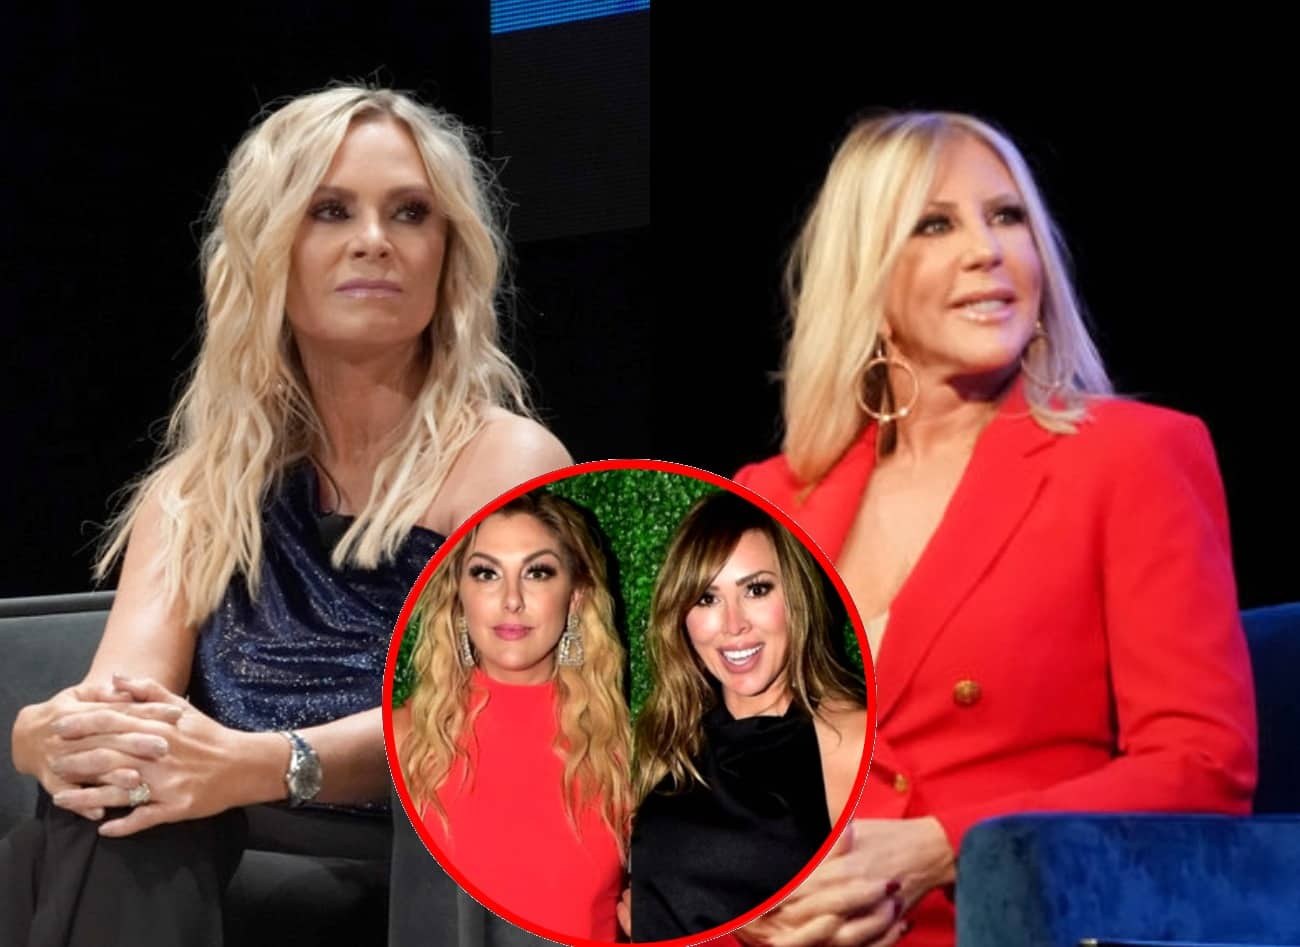 RHOC's Tamra Judge Dishes Why She Was Surprised Vicki Gunvalson Didn't Get Engaged on Camera